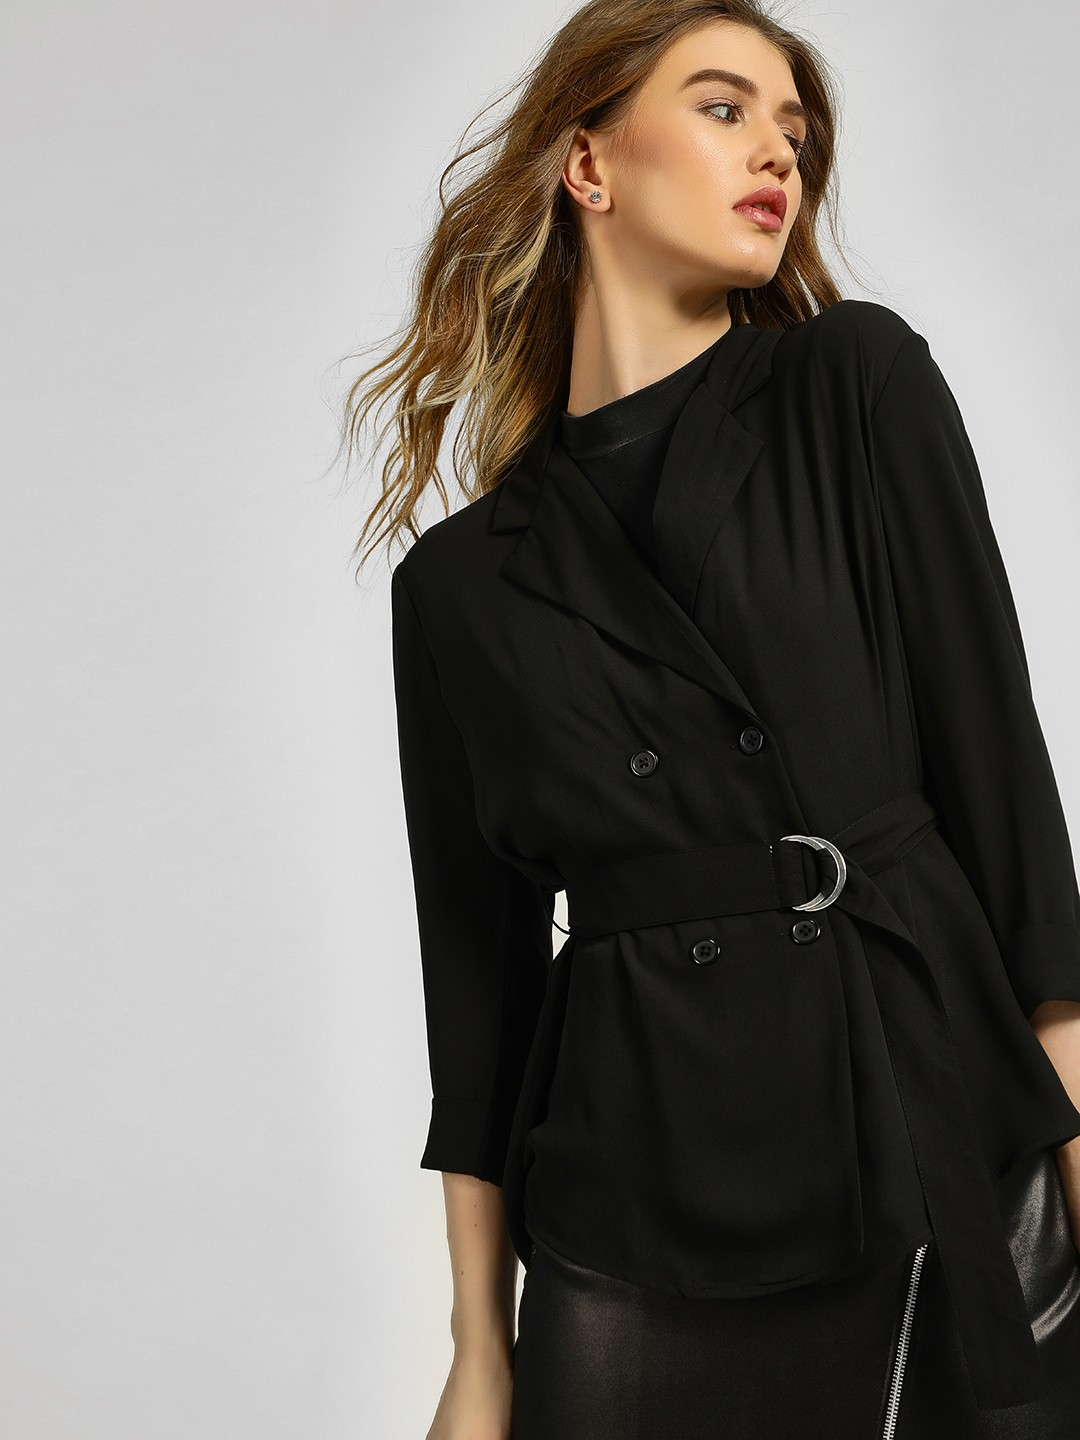 KOOVS Black Long Sleeve Blazer Blouse 1